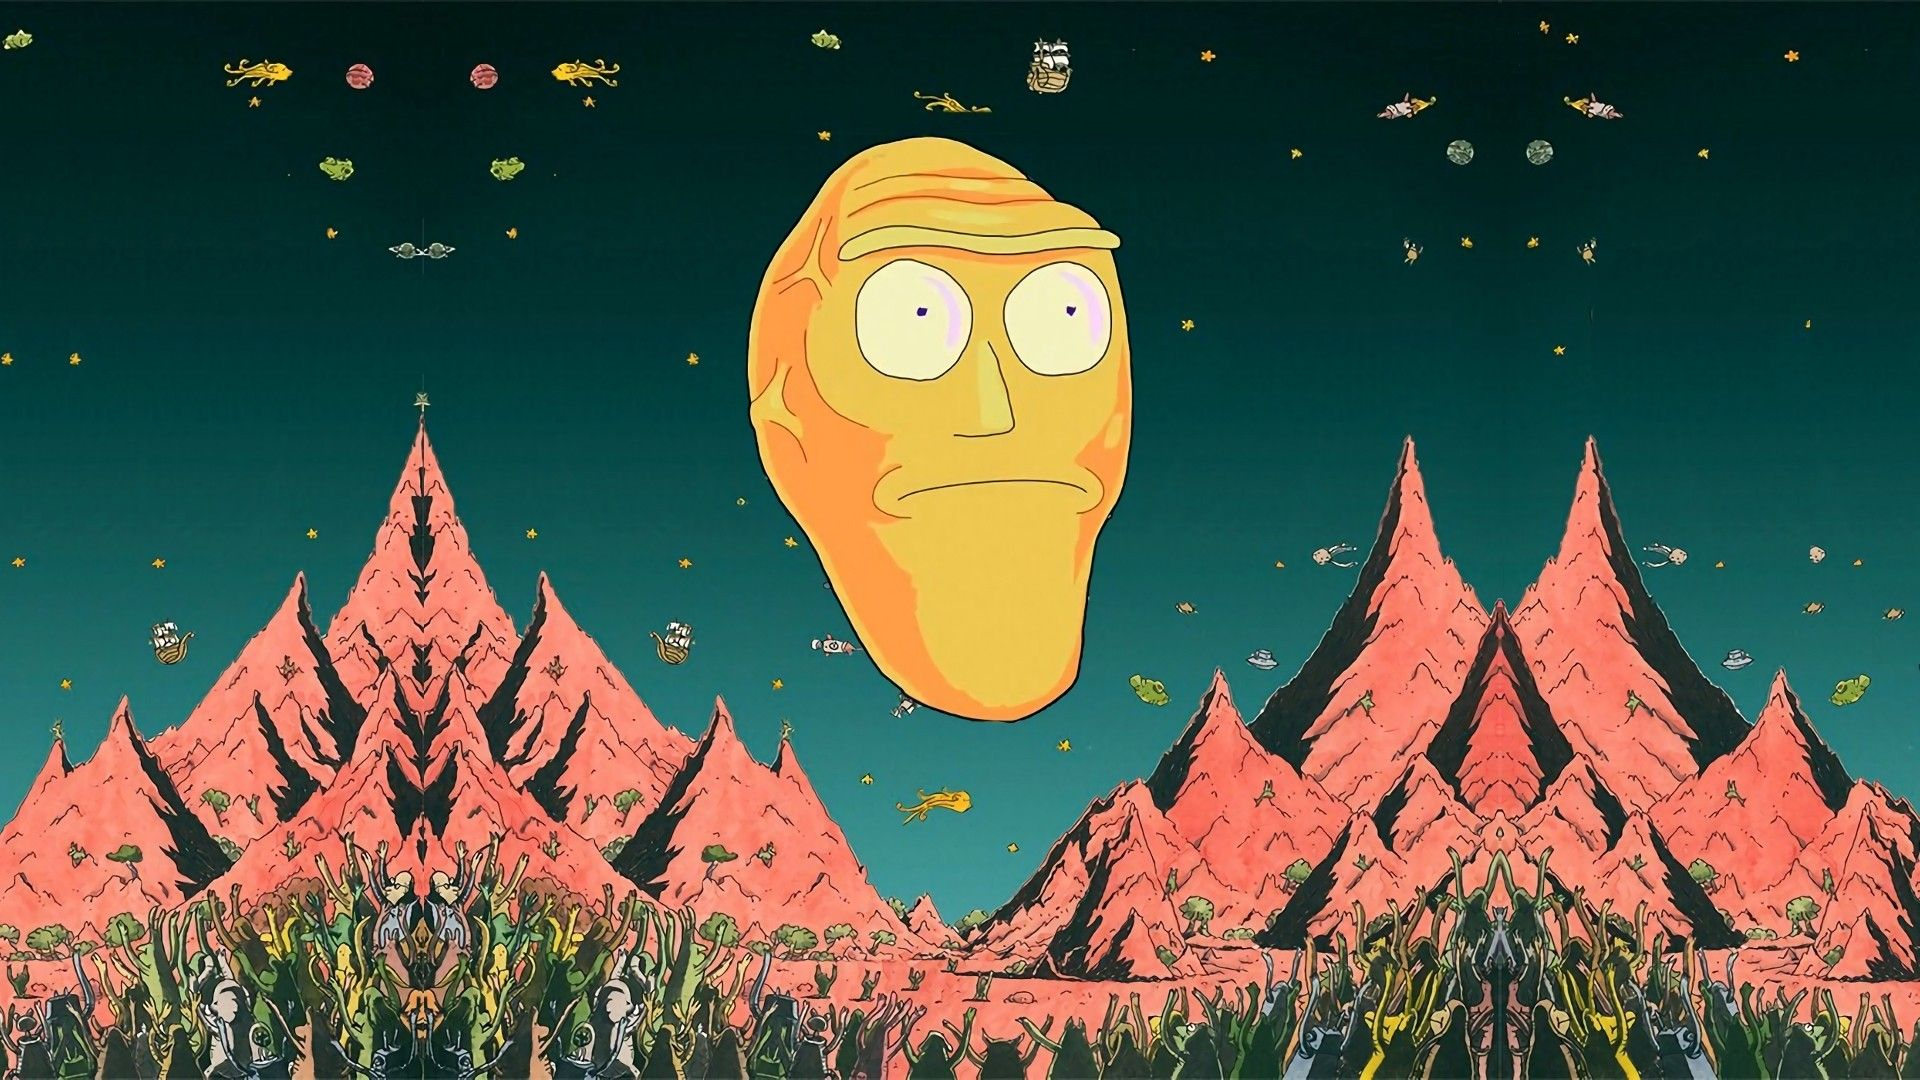 Rick And Morty Background 3d Wallpapers Rick And Morty Wallpapers Morty Wallpaper Rick And Morty Wallpaper Wallpapers